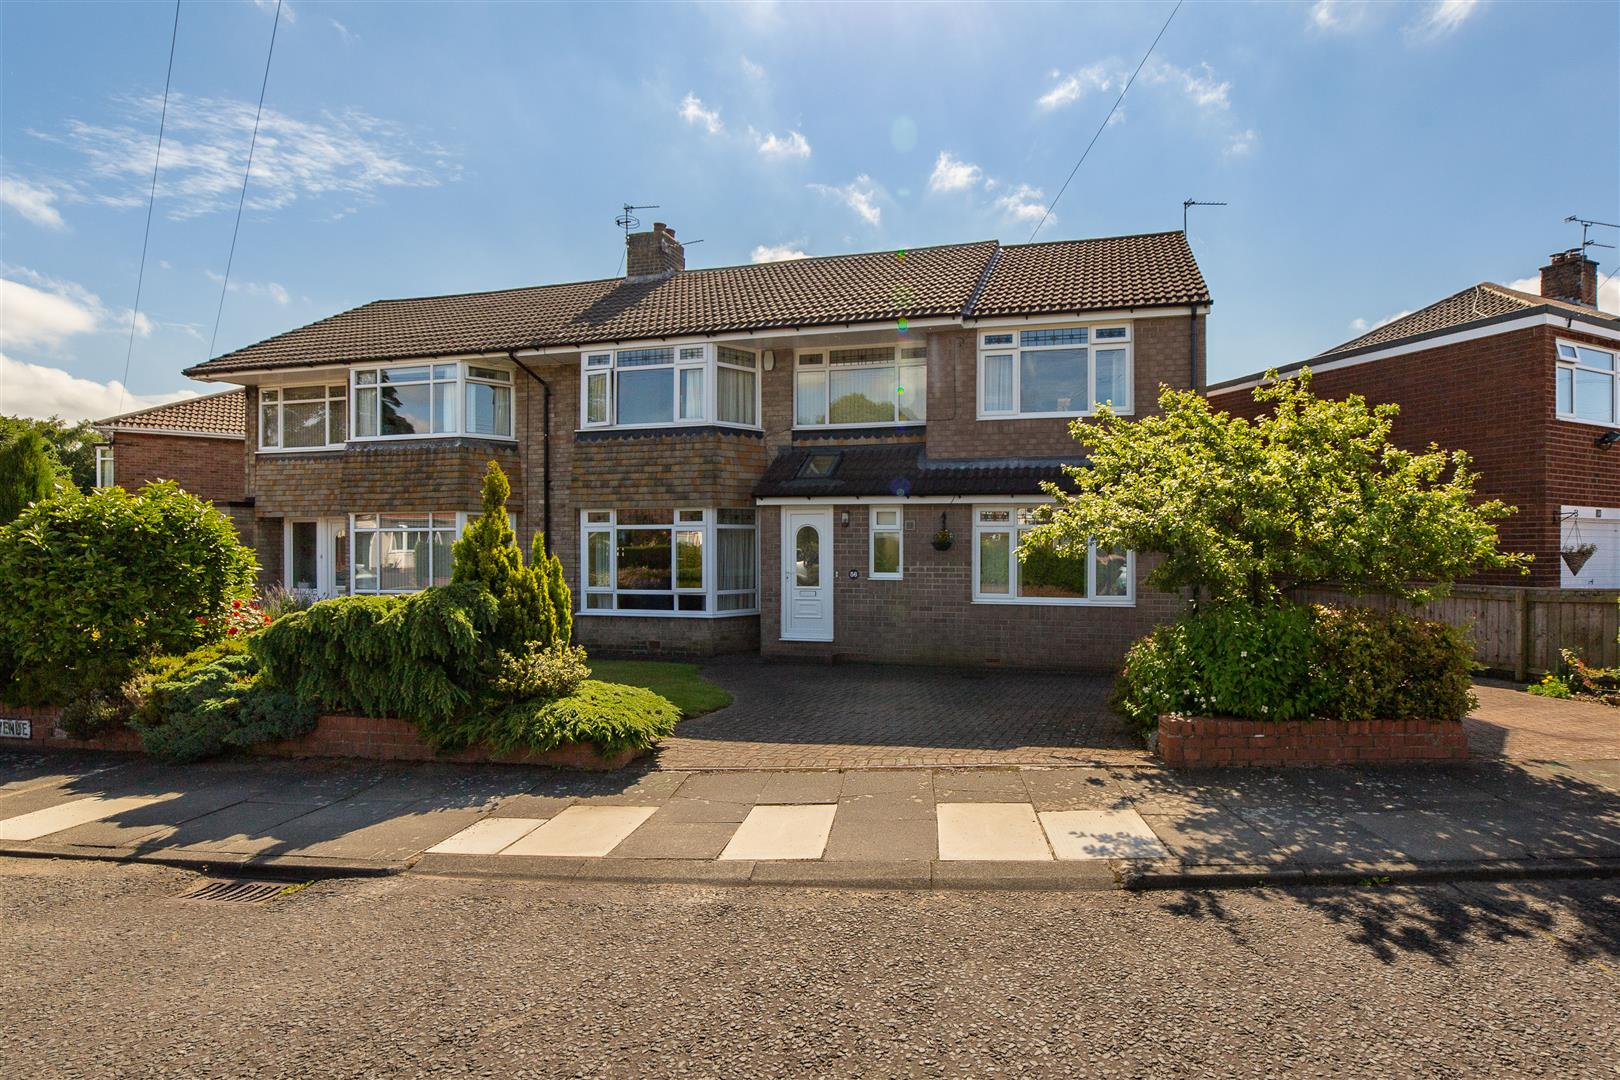 5 bed semi-detached house for sale in Easedale Avenue, Gosforth  - Property Image 1